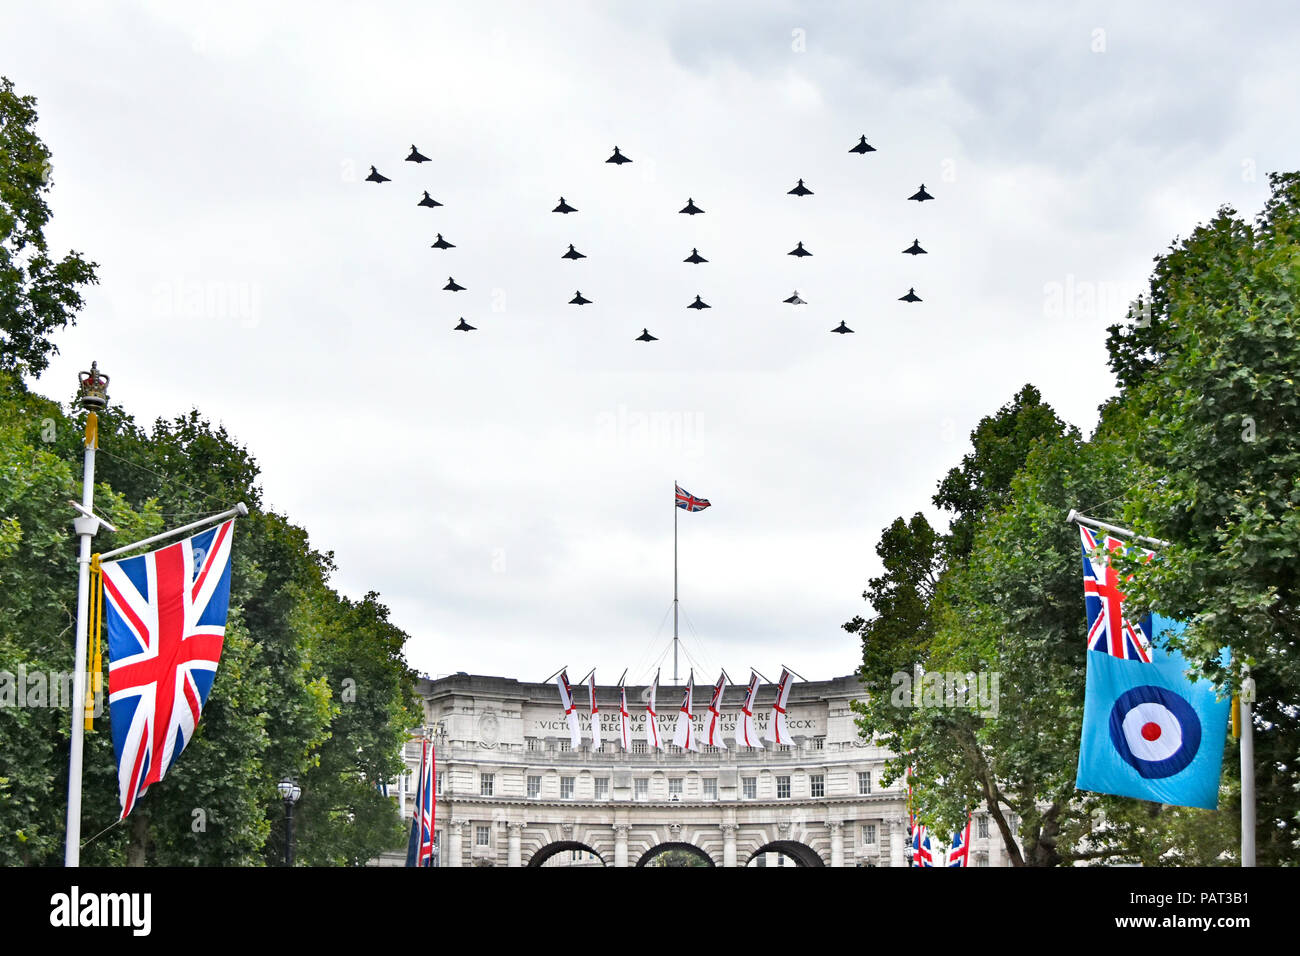 22 Eurofighter Typhoon FGR4 fighter plane RAF ensign centenary flypast over The Mall London flying in 100 figure formation Union Jack flag England UK - Stock Image